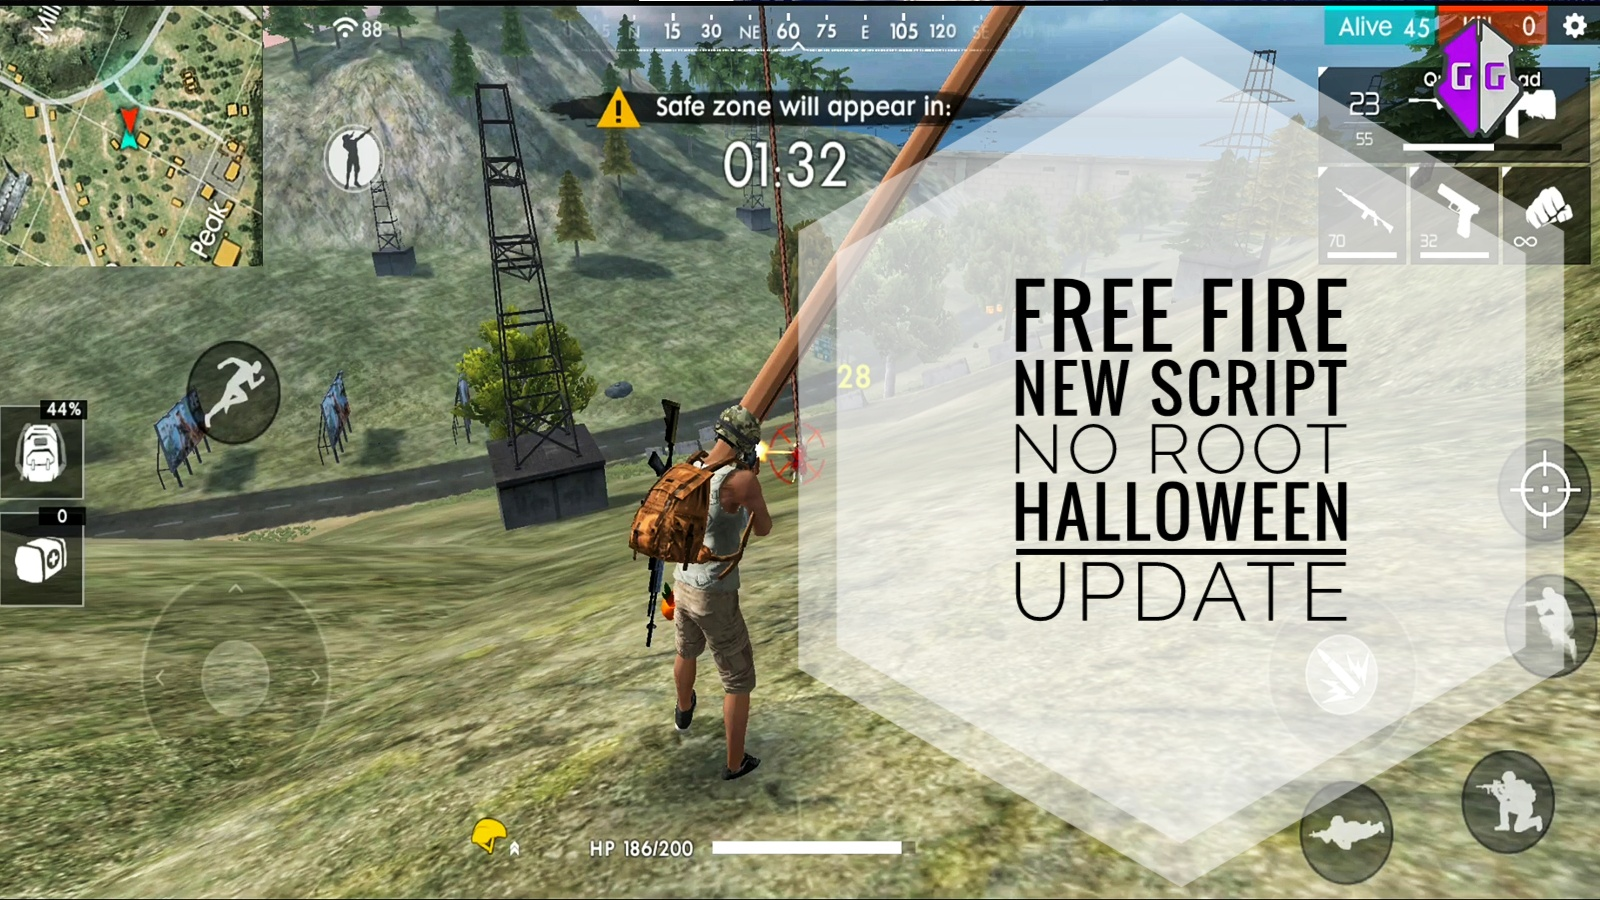 FREE FIRE NEW SCRIPT- MOD APK - HACKS HALLOWEEN UPDATED ANDROID